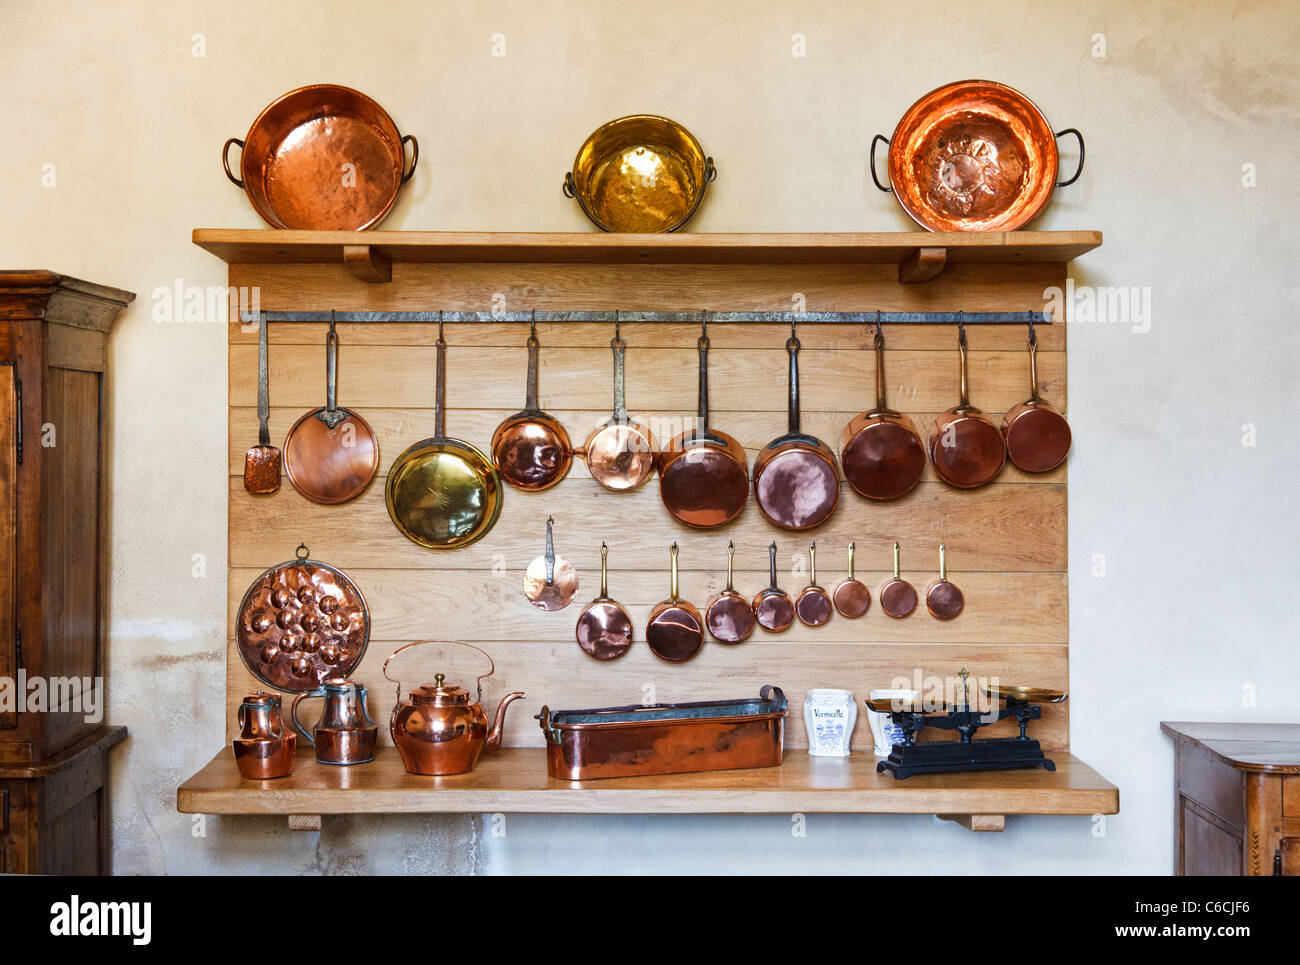 Copper pots and pans in a kitchen - Stock Image